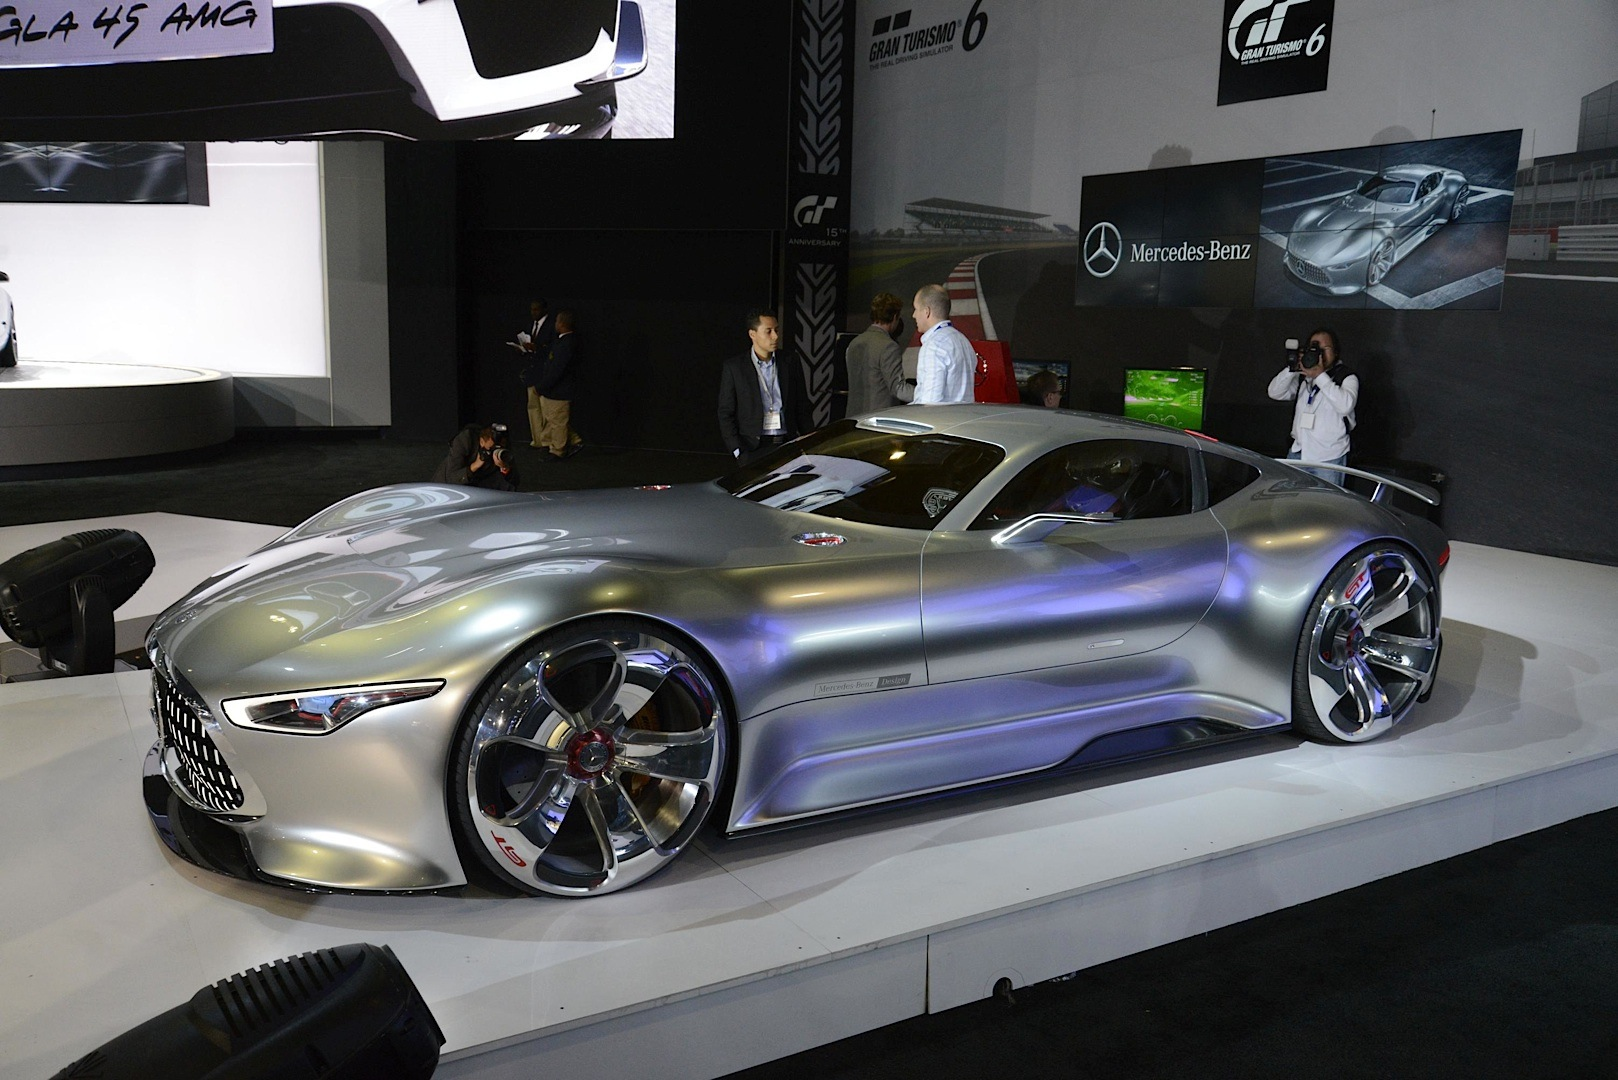 Mercedes benz amg vision gran turismo looks badass live as for Mercedes benz amg vision